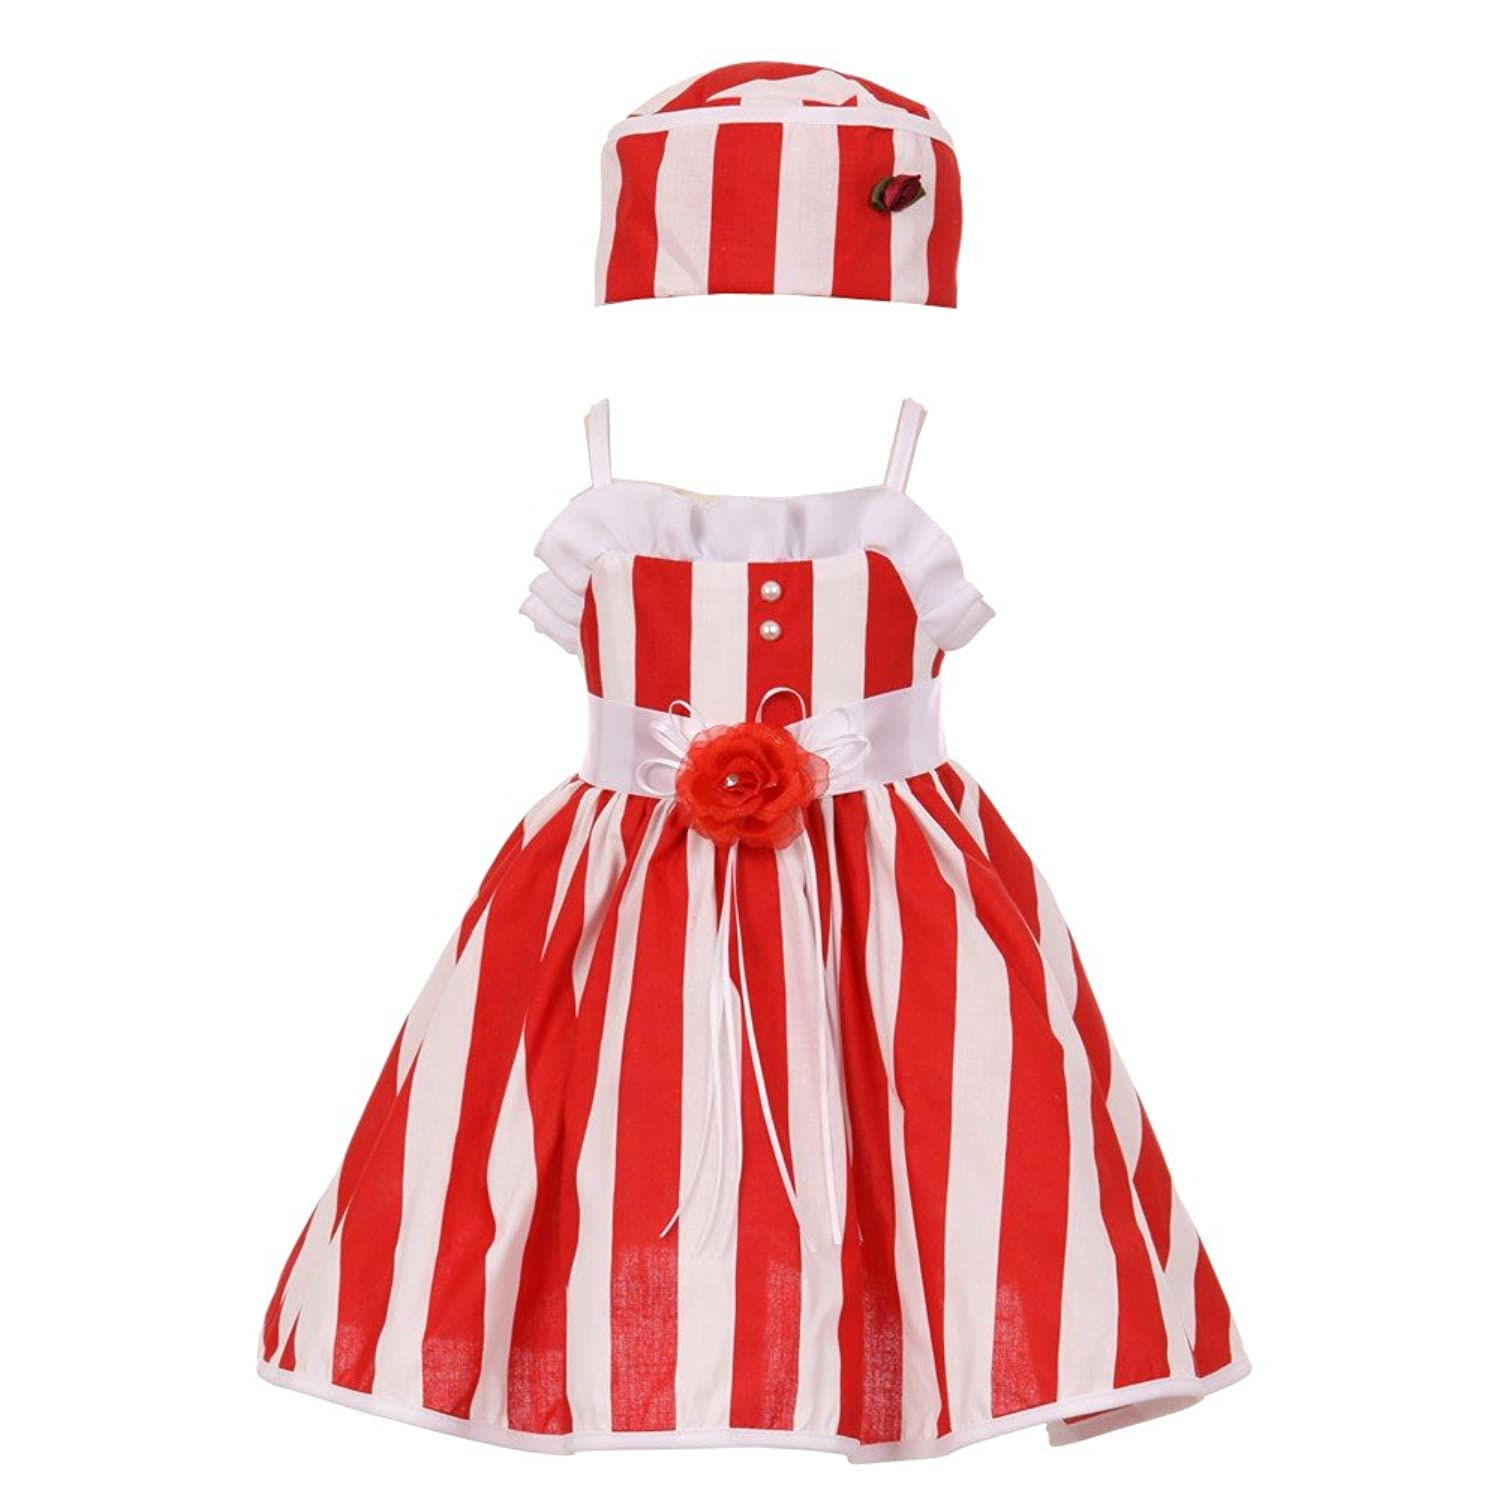 17d7ae1046c Amazon.com  Baby Girls Red White Vertical Stripe Ruffle Detail Easter Hat  Dress 6-24M  Clothing